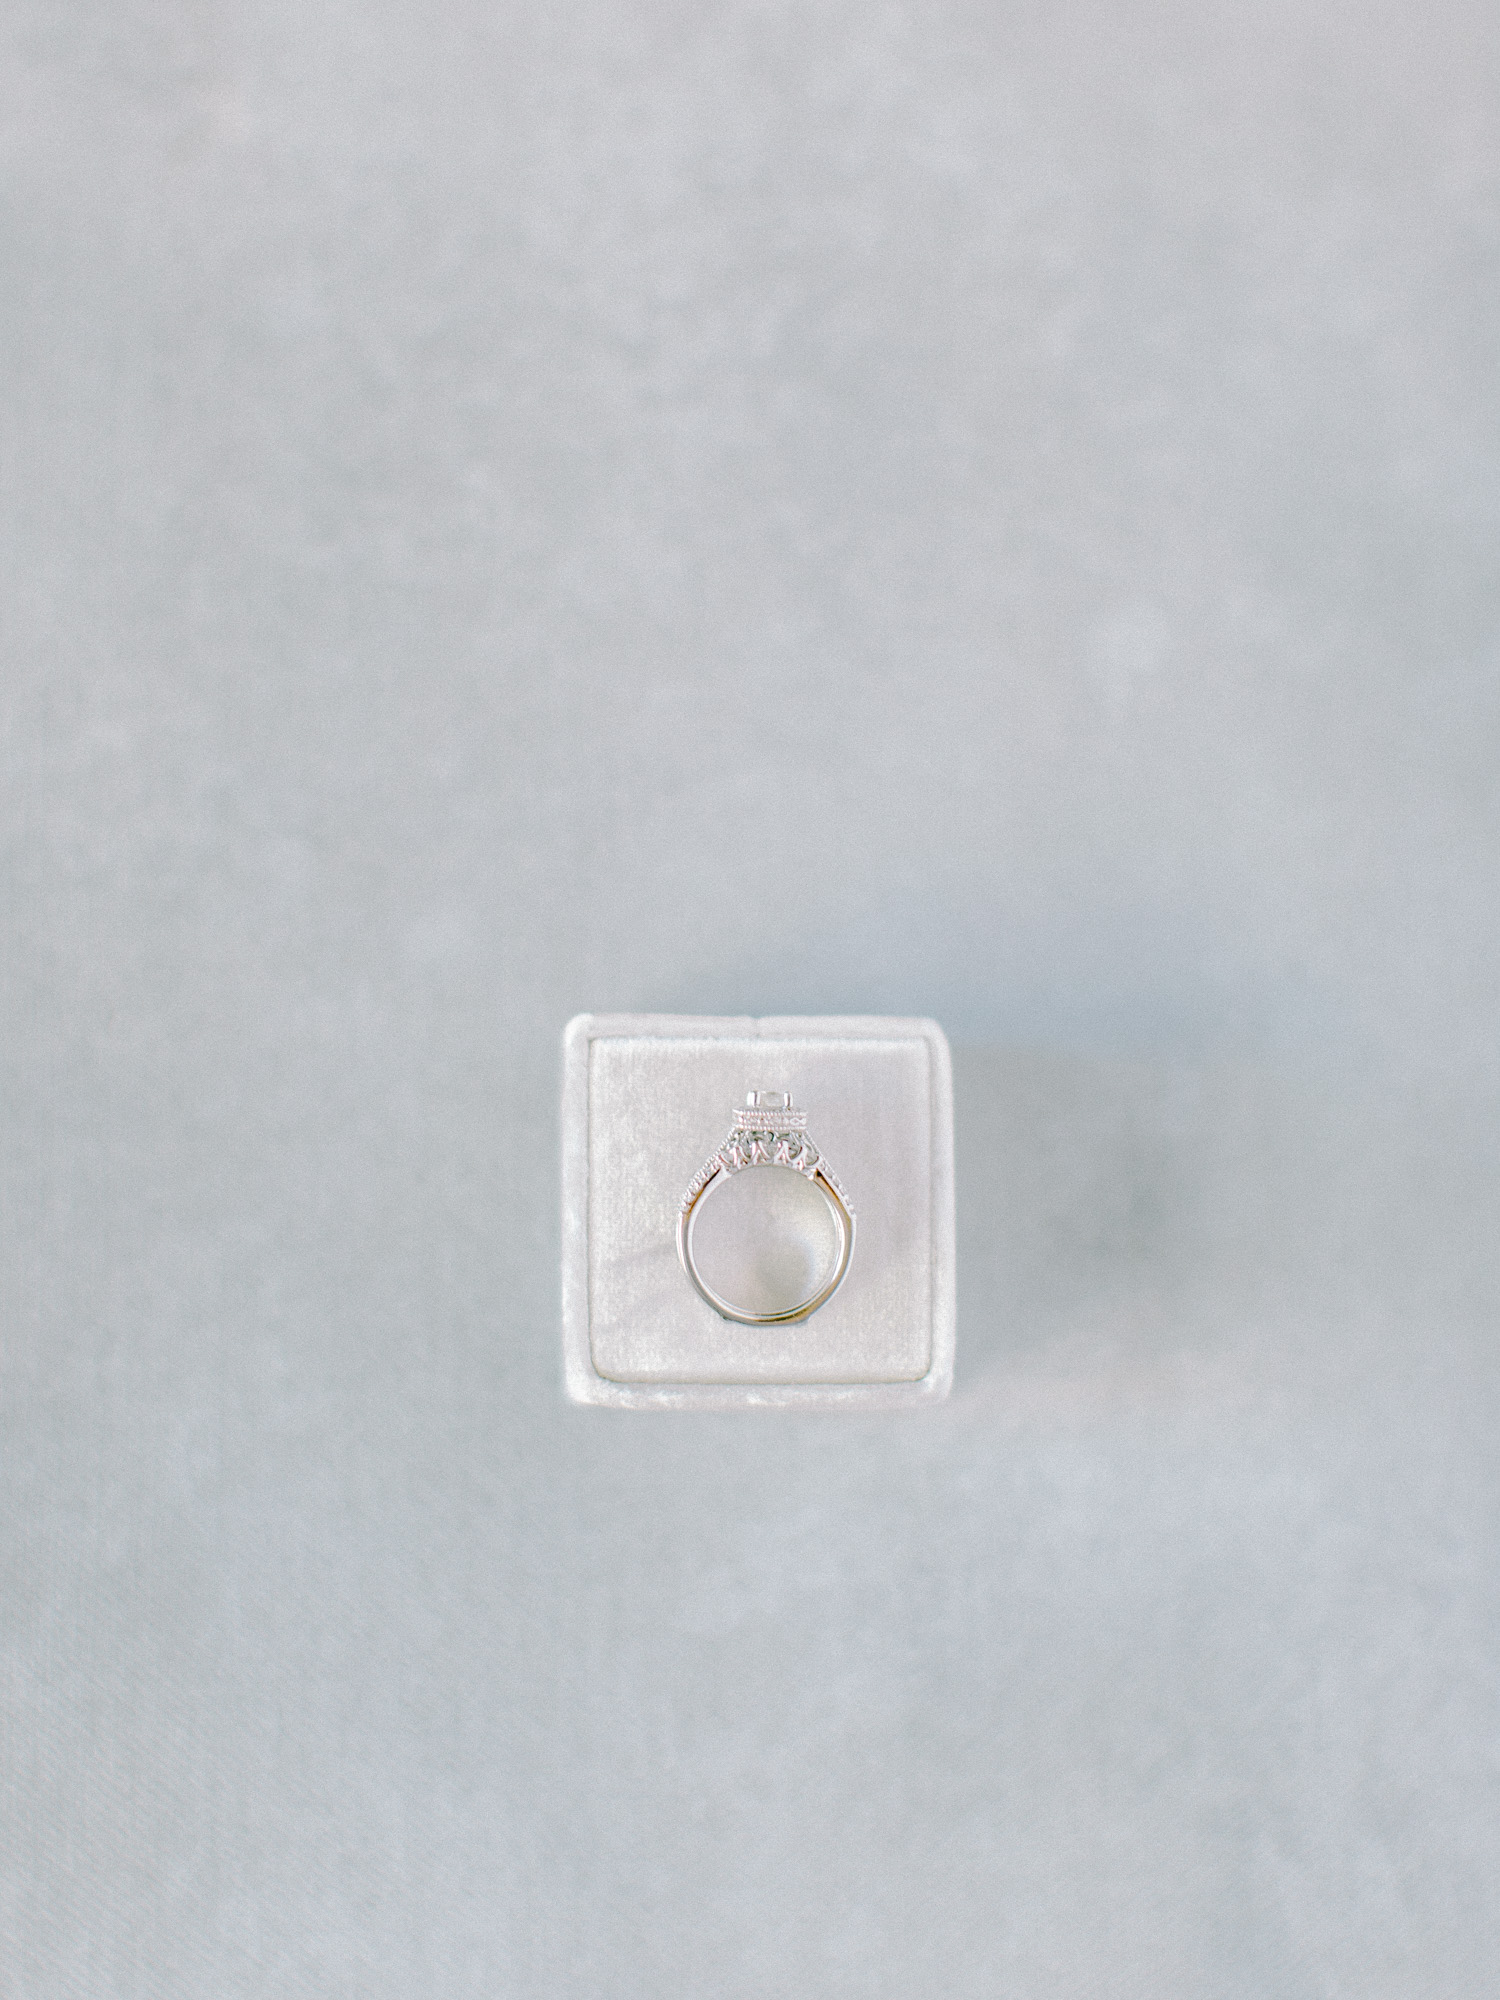 An ornate white gold and diamond wedding ring rests on a cream velvet box